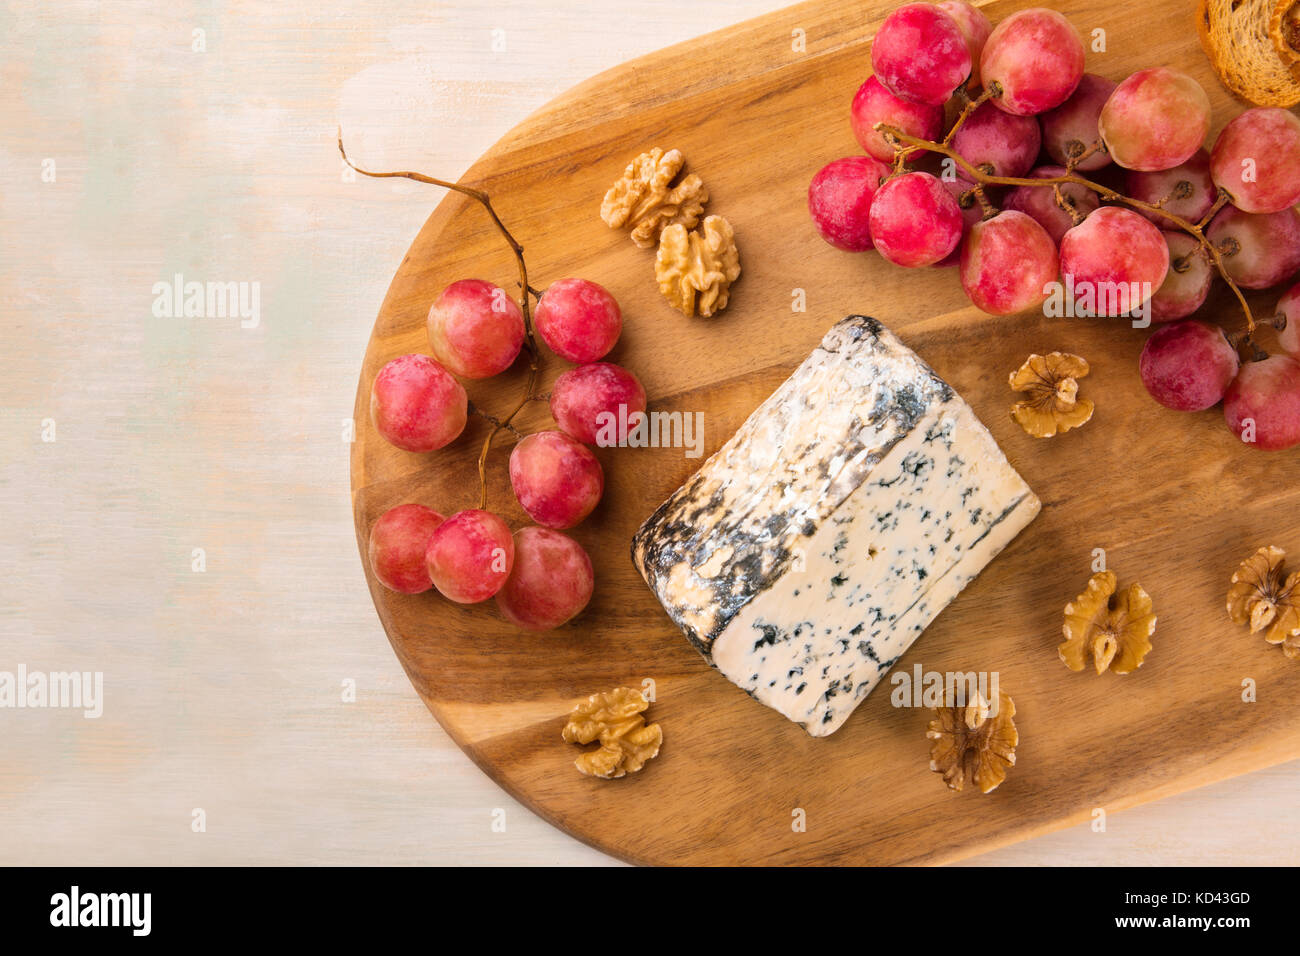 Blue cheese with grapes, nuts, and toasts, and copyspace - Stock Image